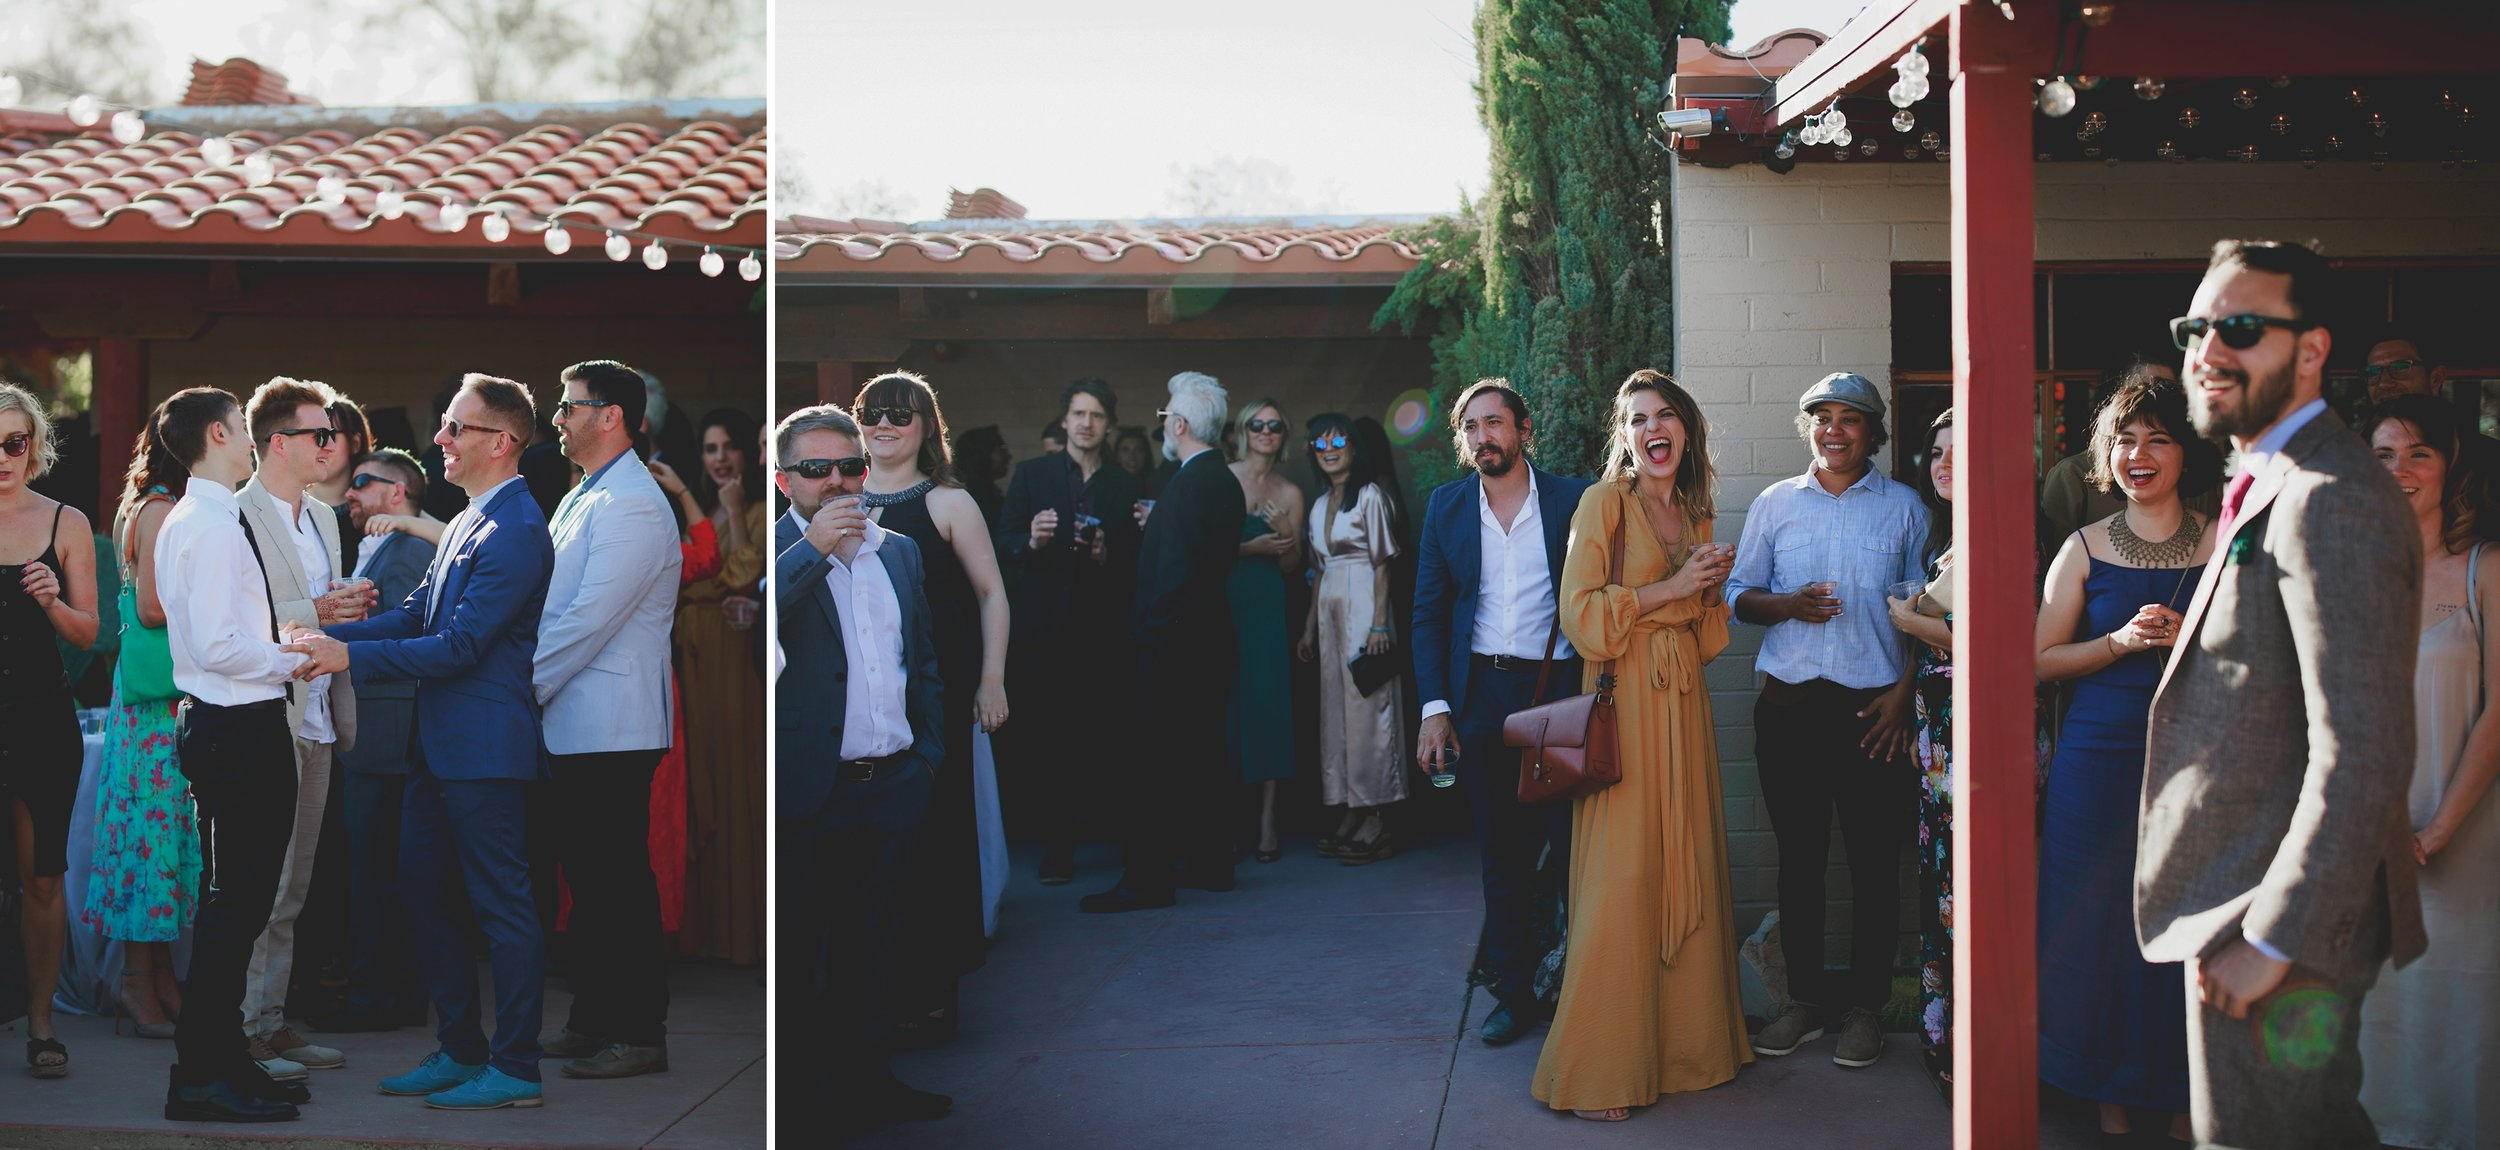 amanda_vanvels_joshua_tree_inn_wedding_065.jpg